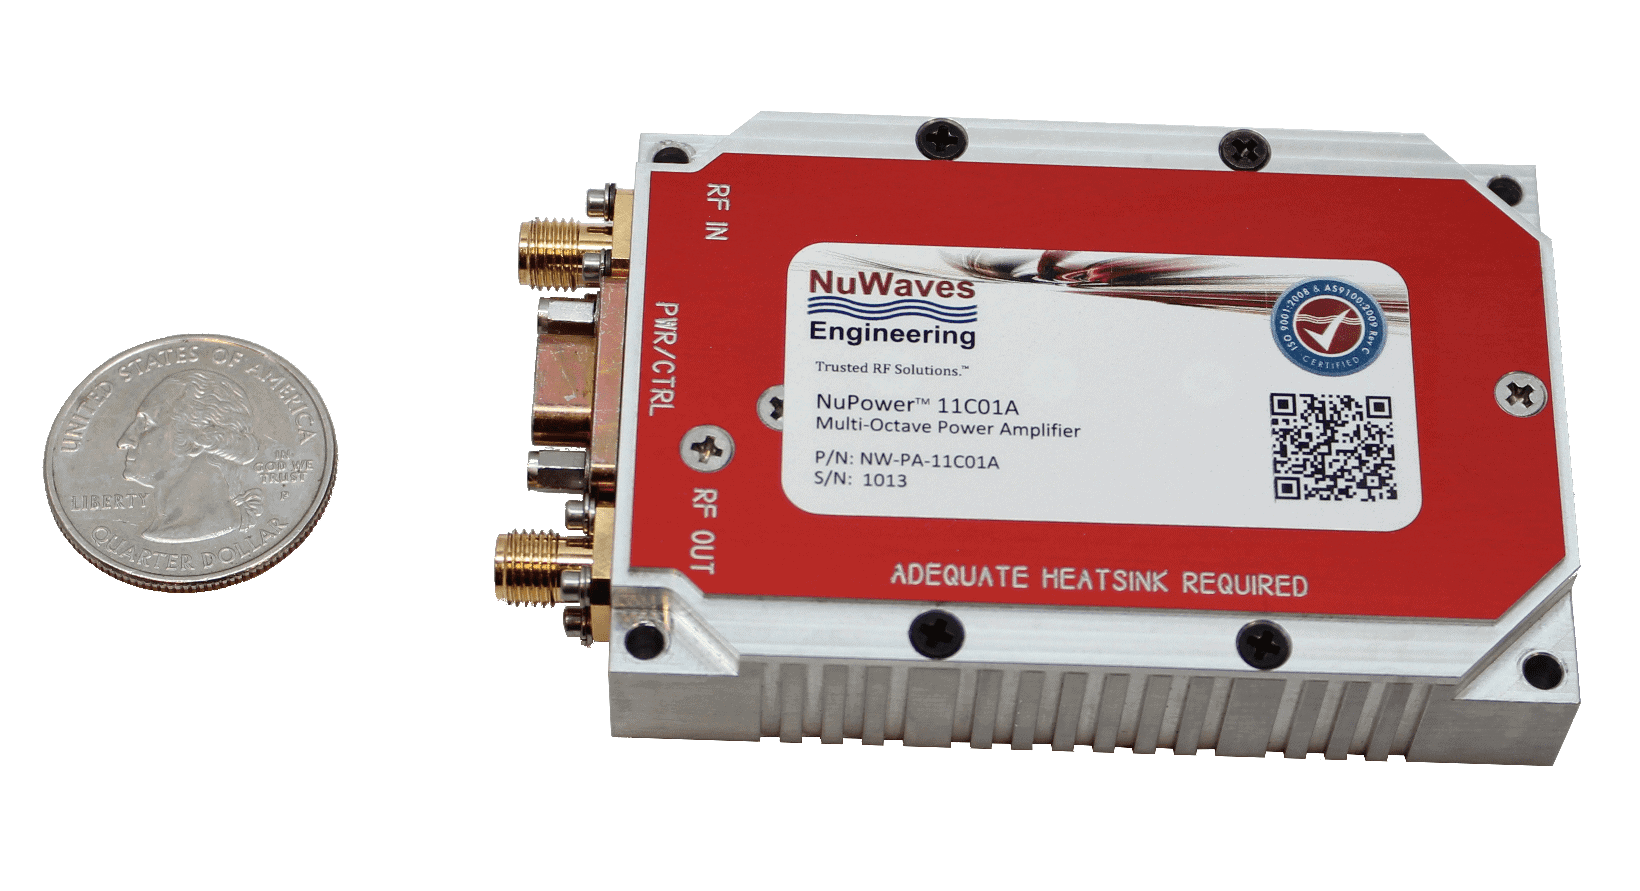 NuPower 11C01A Multi-Octave Power Amplifier